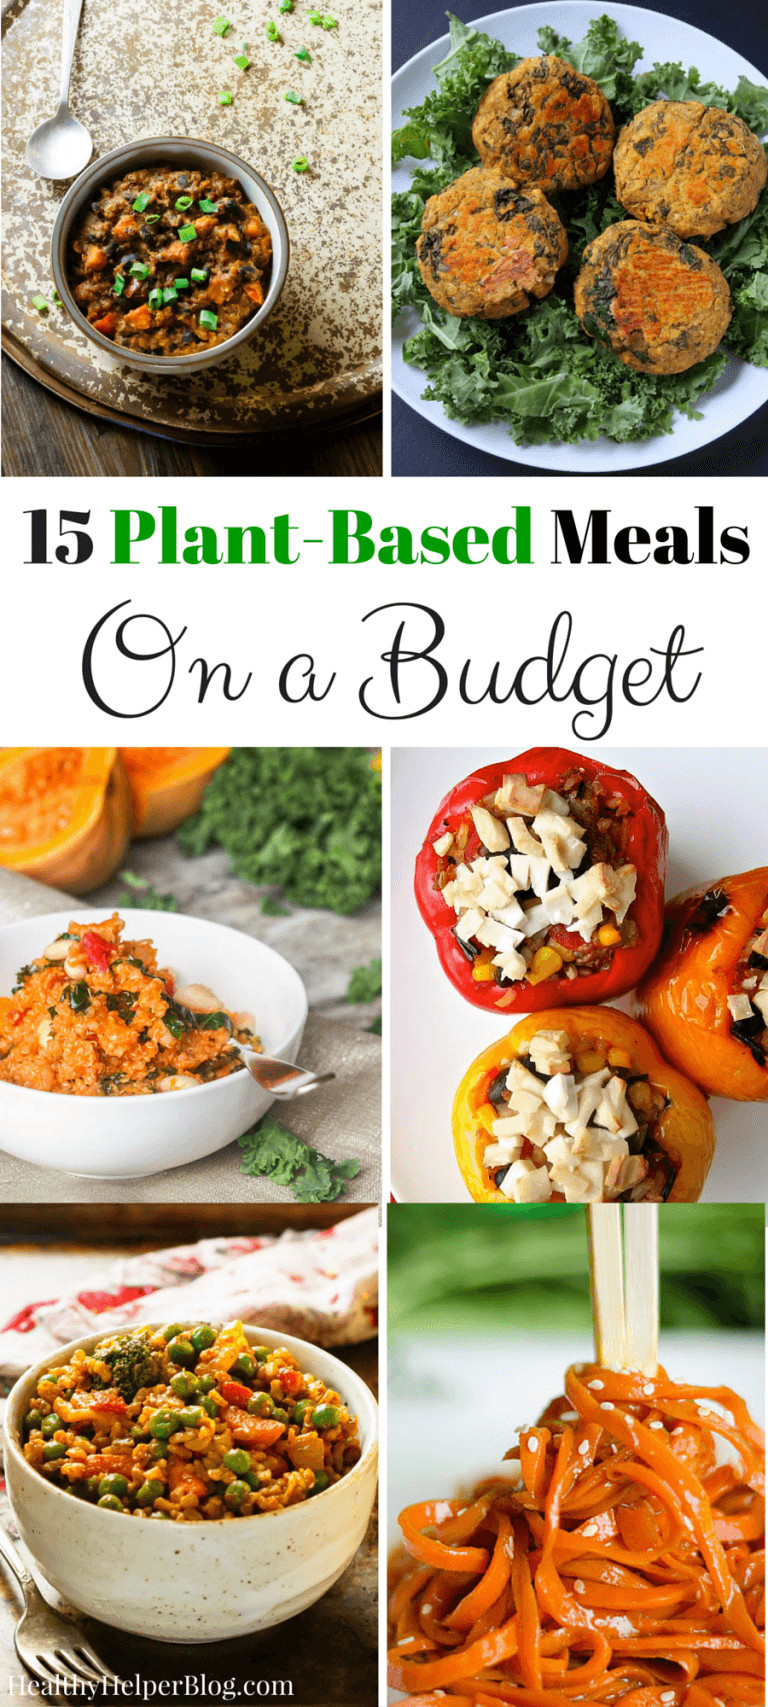 Dinners On A Budget  Love Healthy Recipes Wel e to the Healthy Living Link